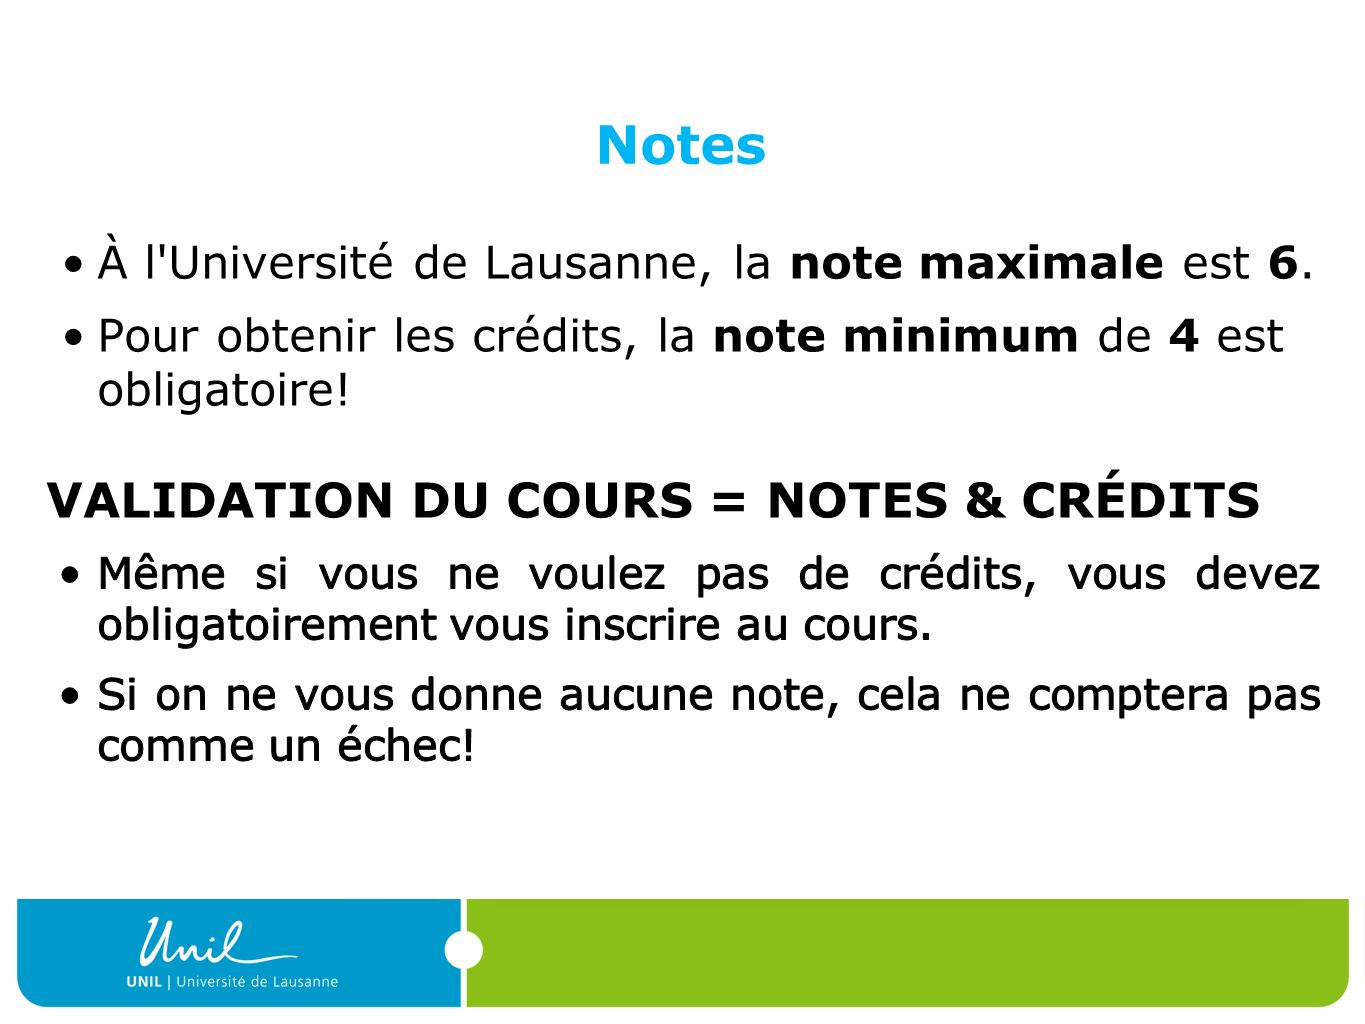 Notes VALIDATION DU COURS = NOTES & CRÉDITS